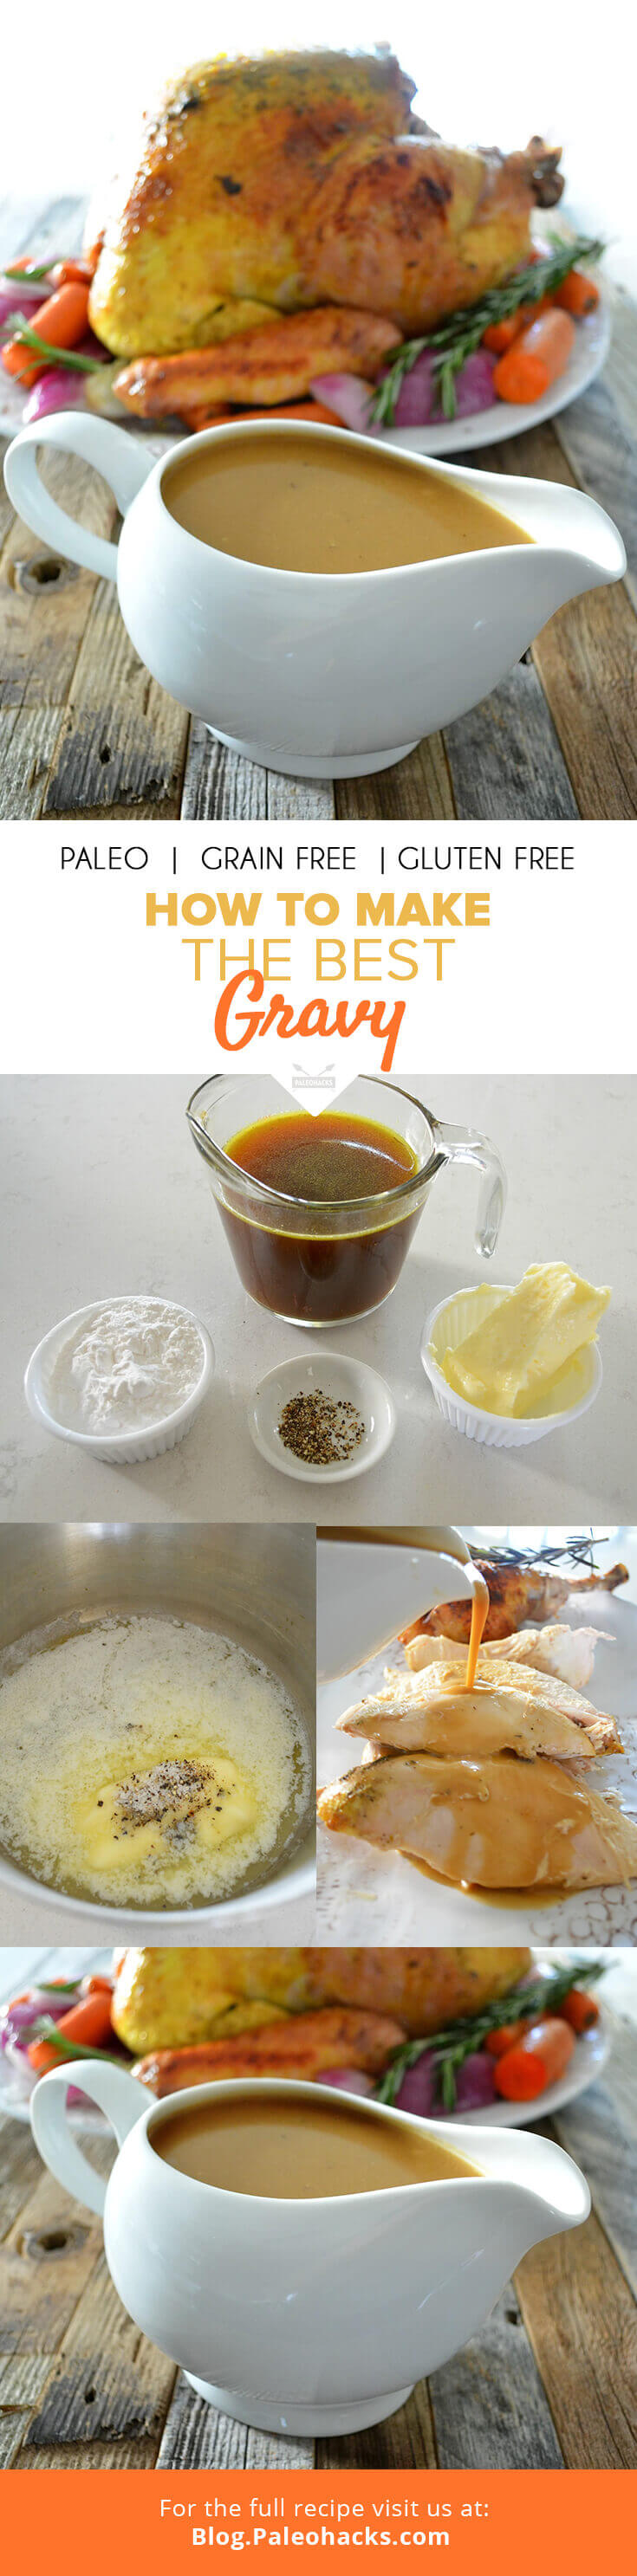 traditional-pin-how-to-make-the-best-gravy